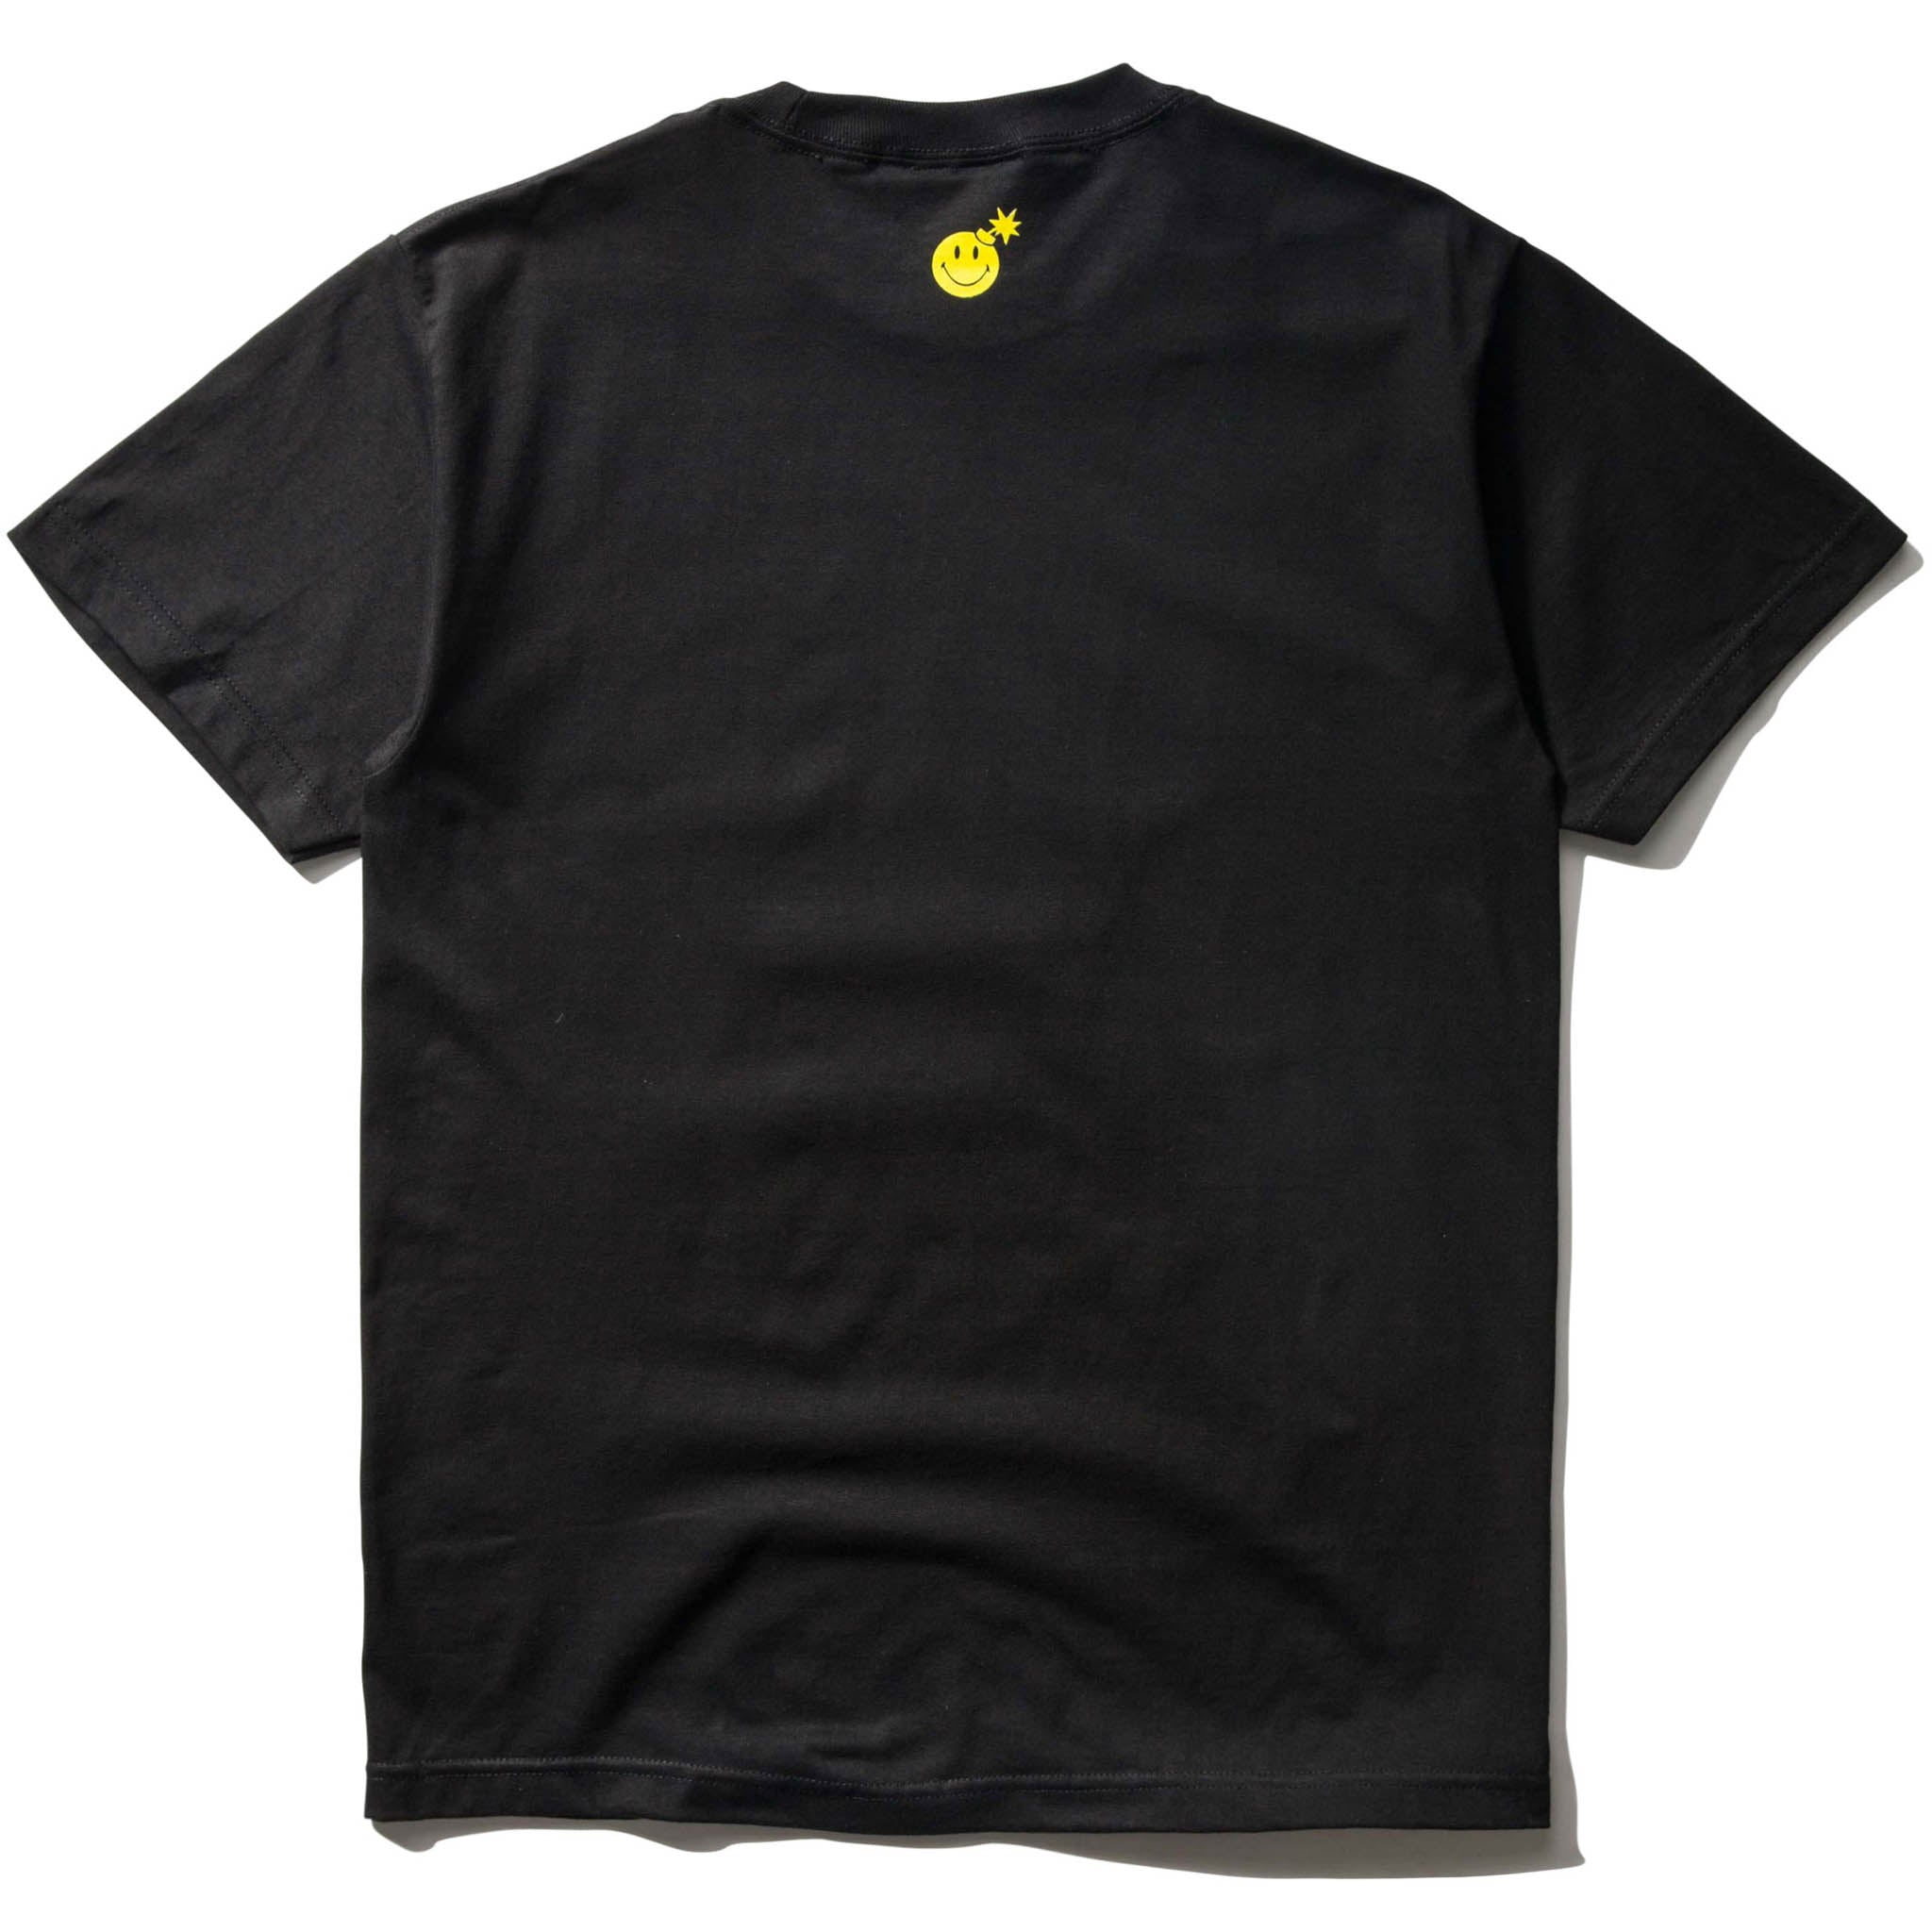 THE HUNDREDS x CTM BAR T-SHIRT (BLACK)